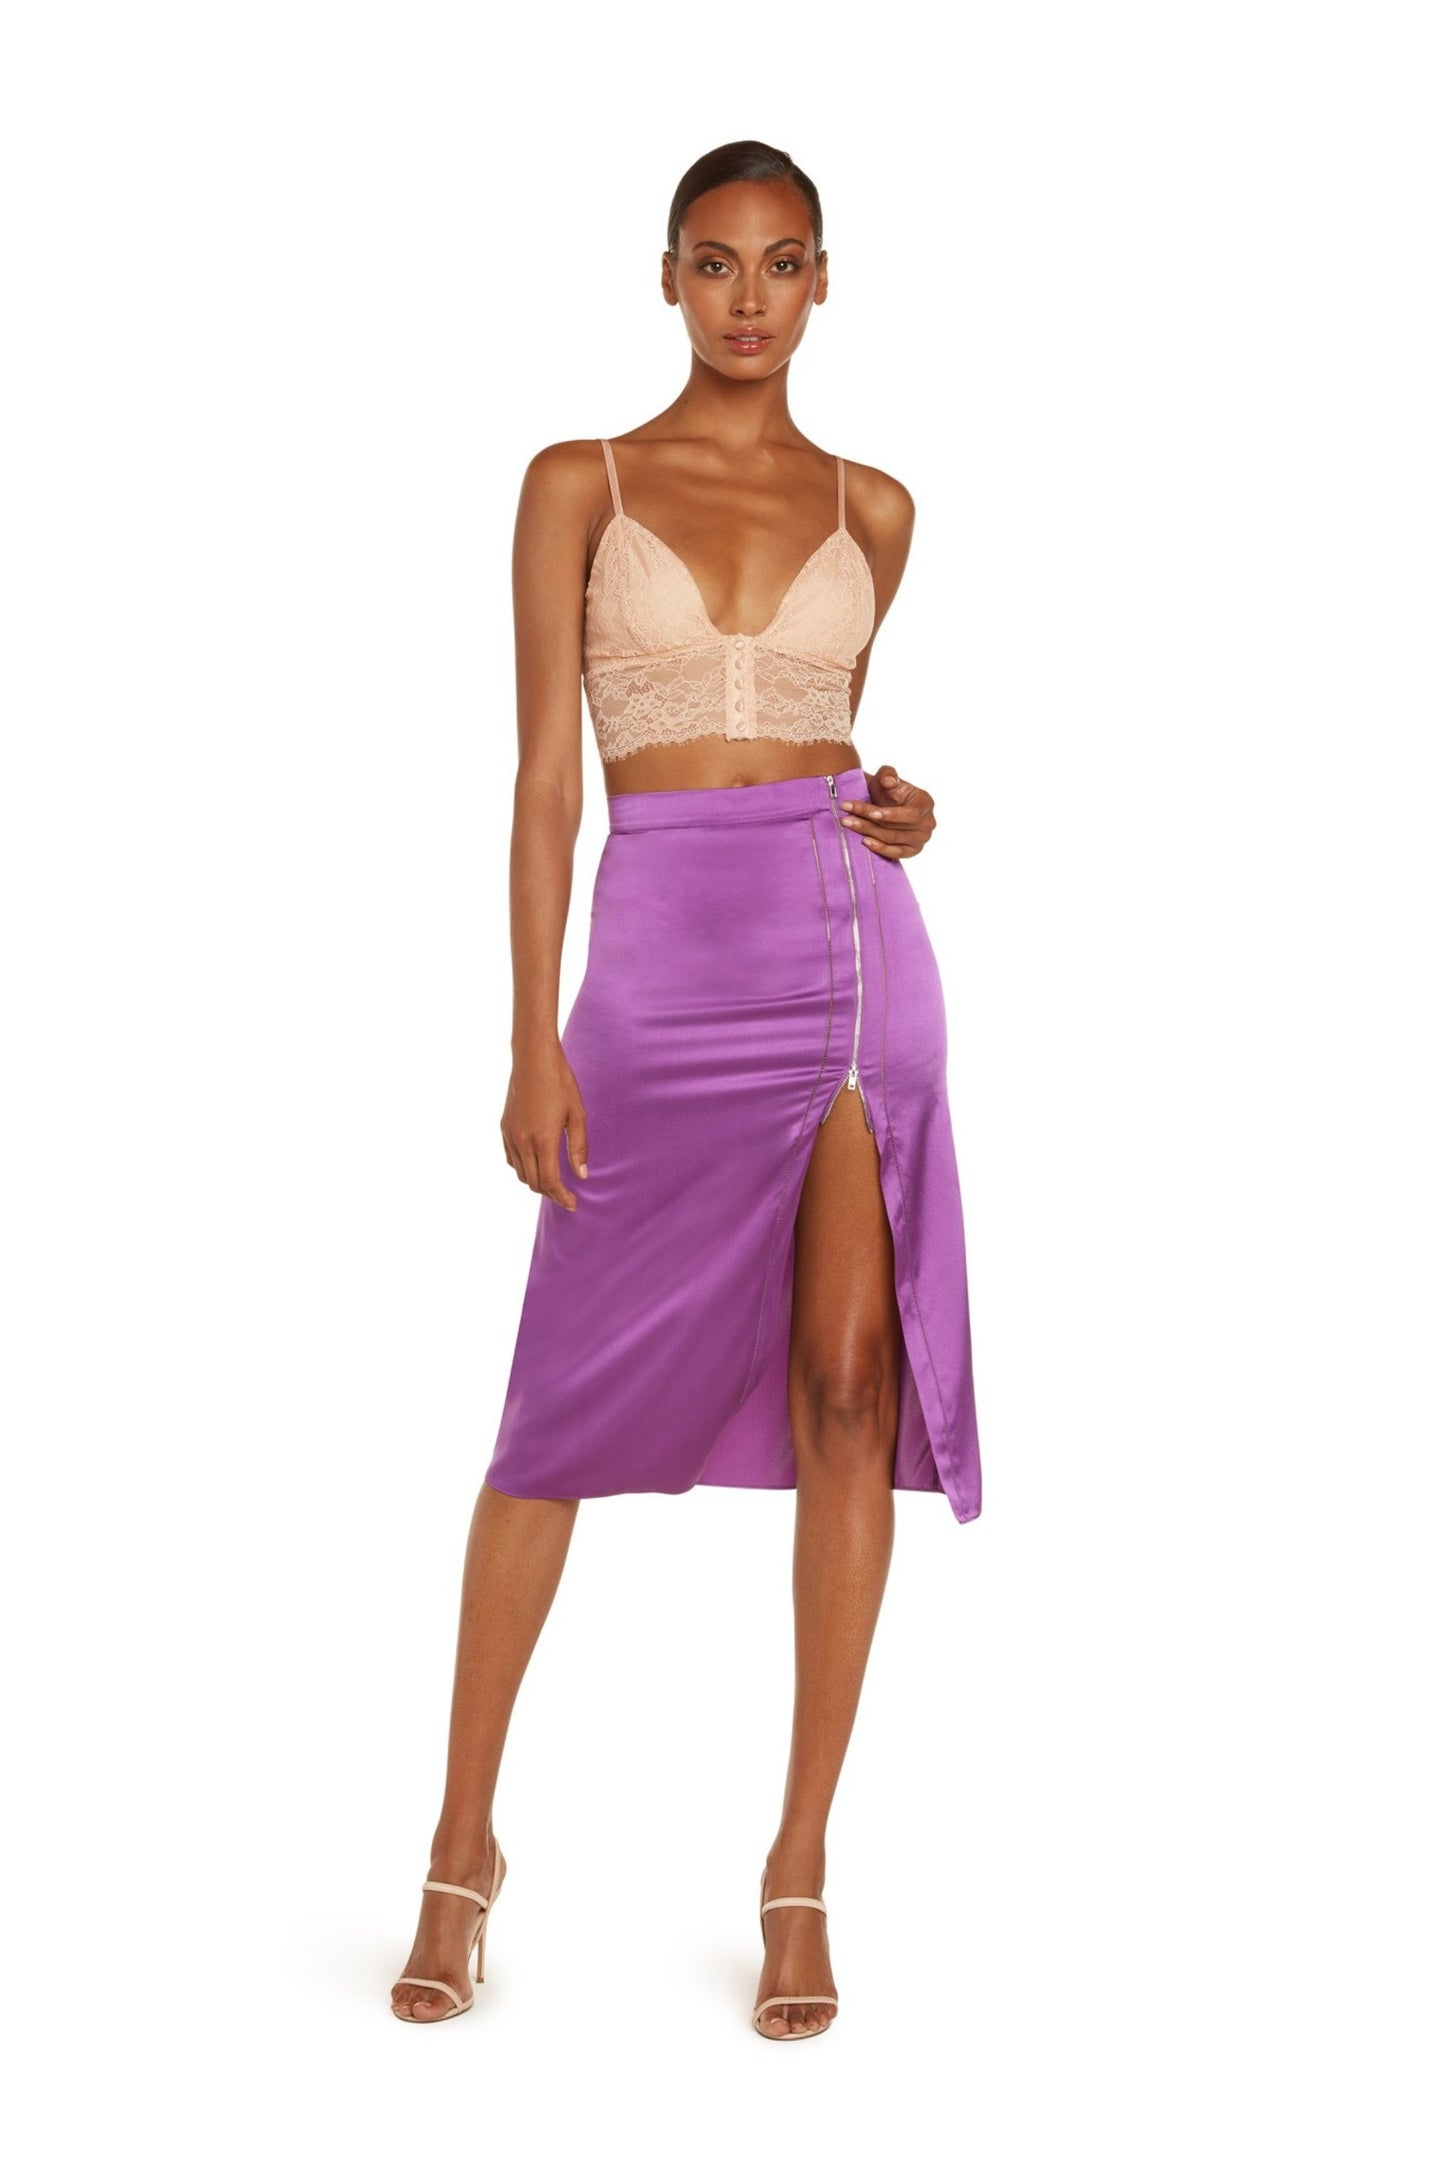 Anya High Waisted Midi Skirt In Violet Stretch Silk Satin With Crochet and Exposed Zipper